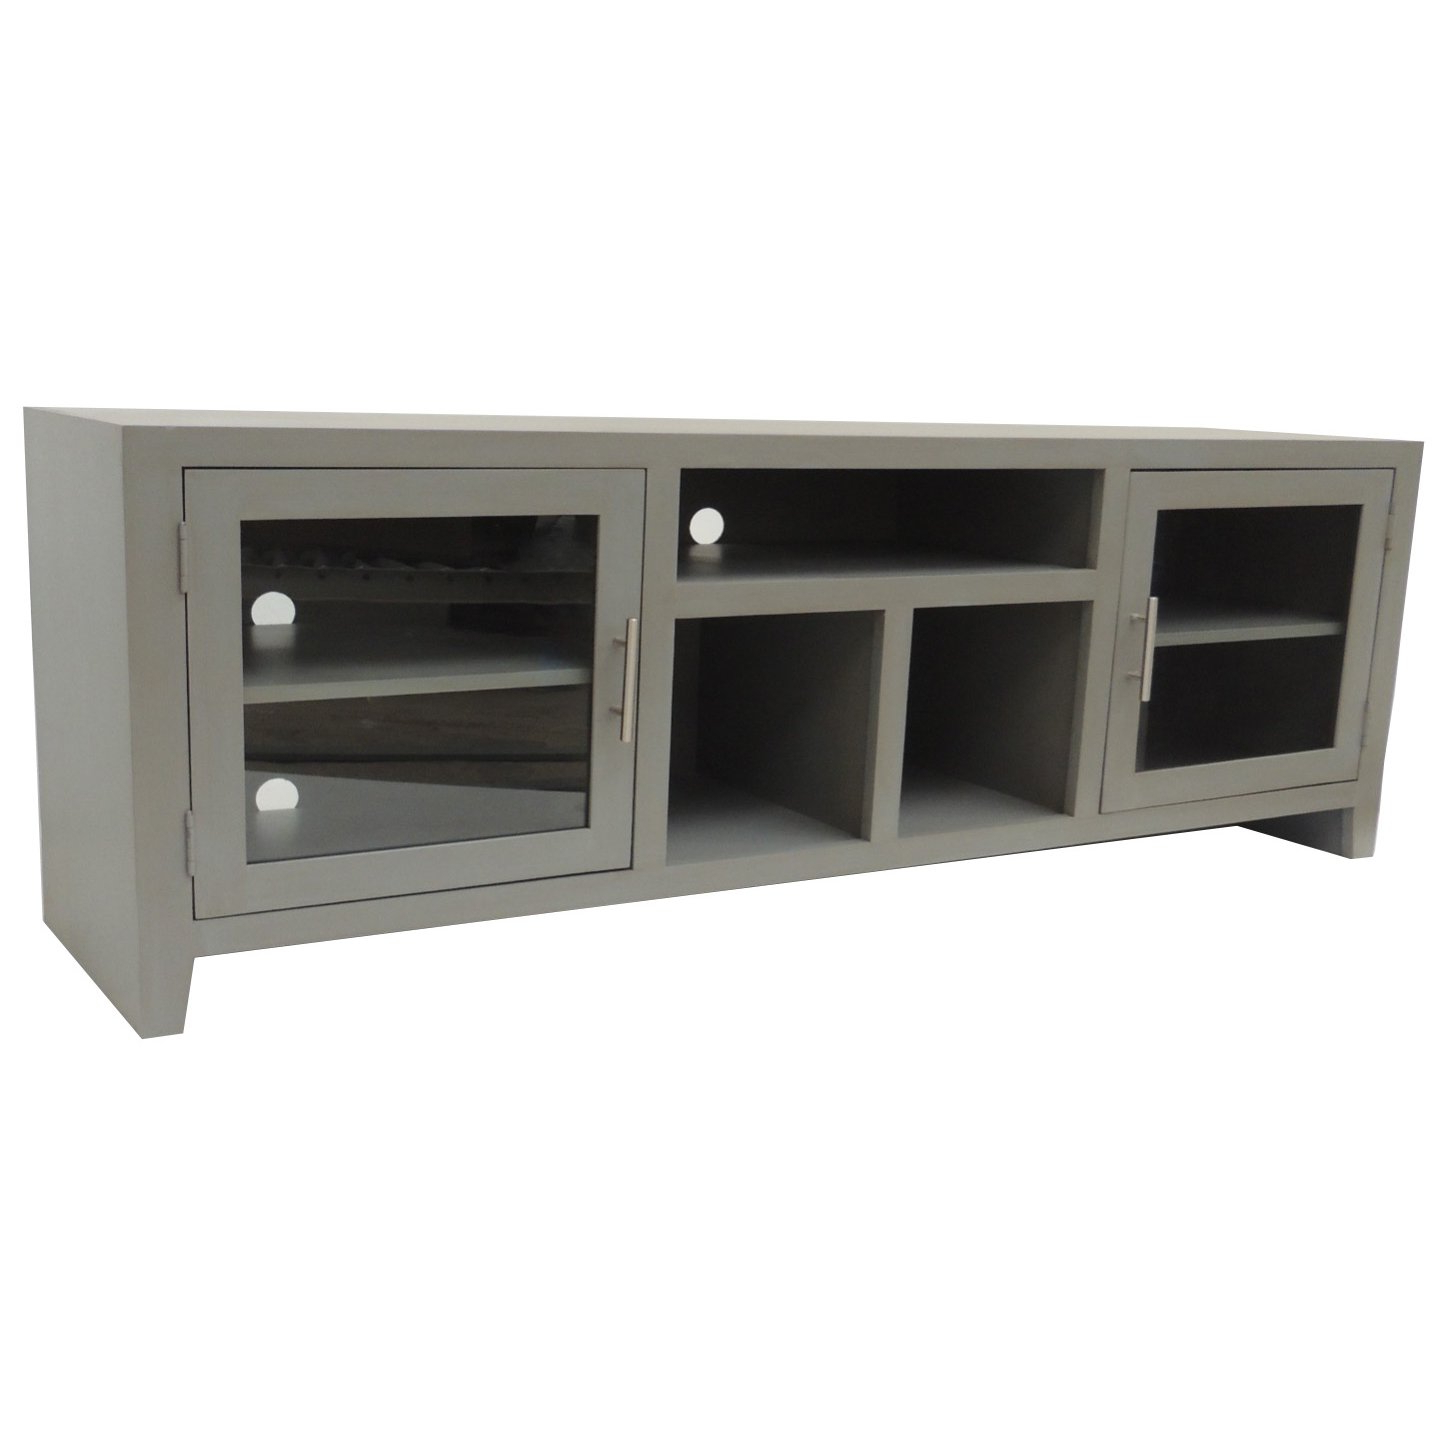 65 Inch Gray Tv Stand | Rc Willey Furniture Store Within Draper 62 Inch Tv Stands (View 3 of 20)